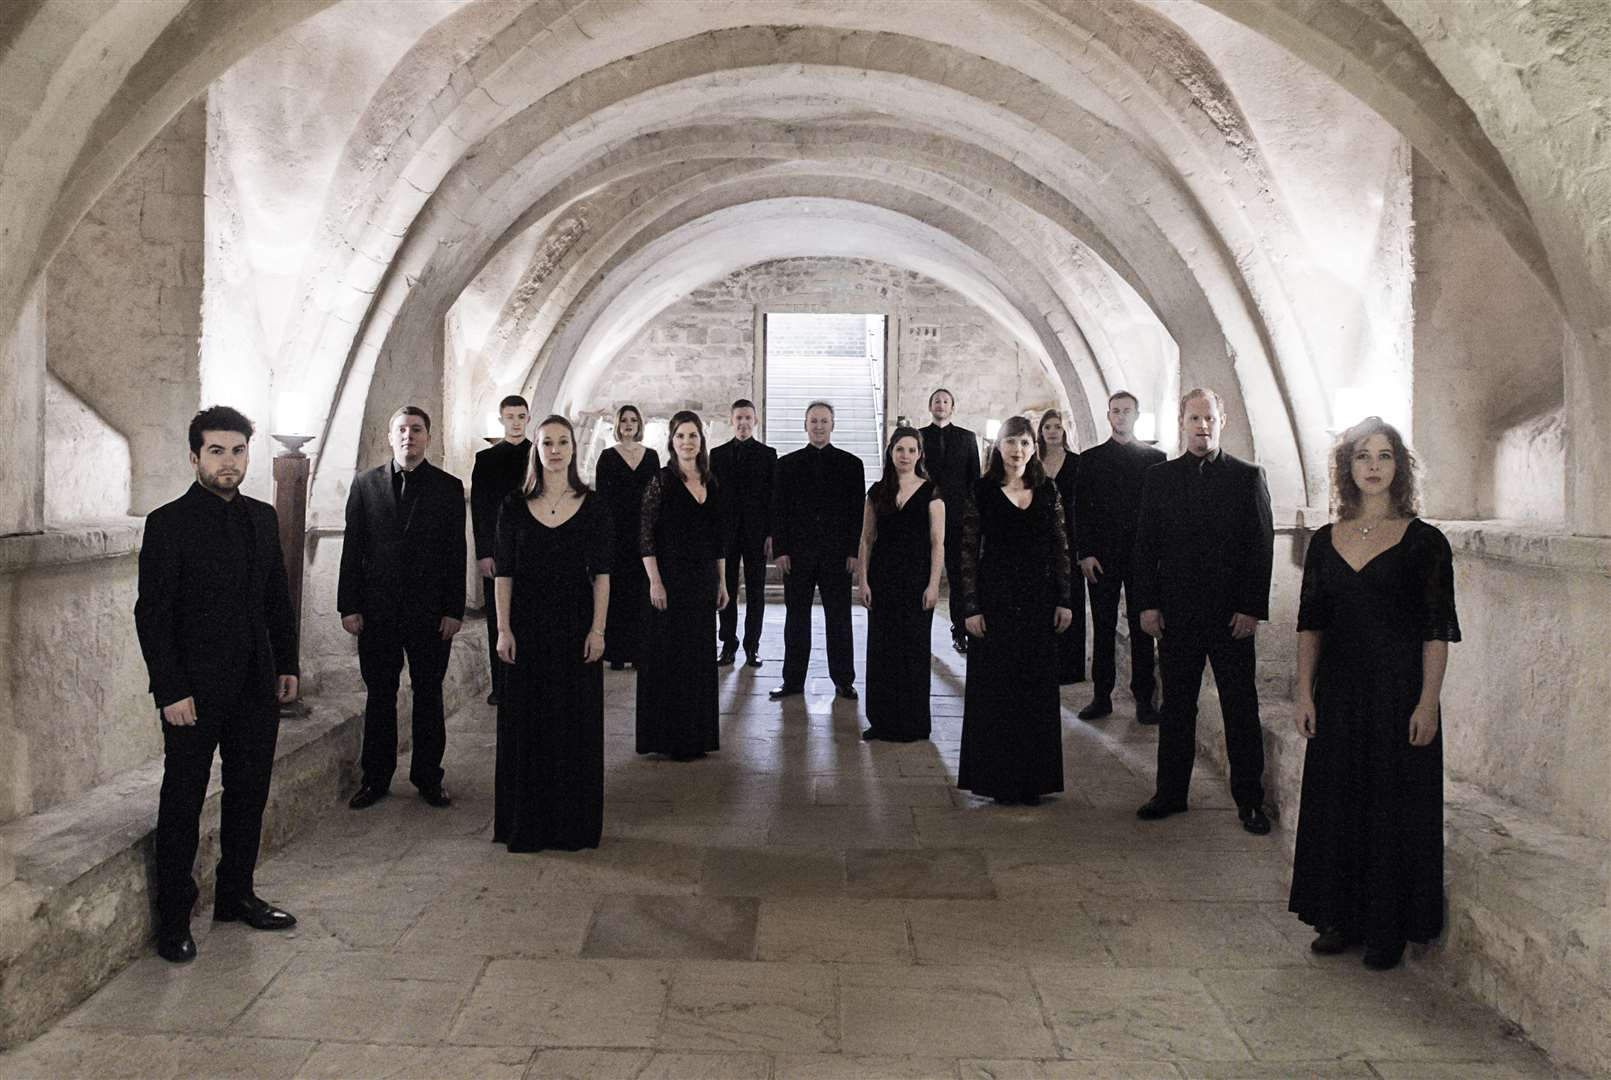 Vocal ensemble Tenebrae will be performing at the festival's opening event. Picture: Sim Canetty-Clarke